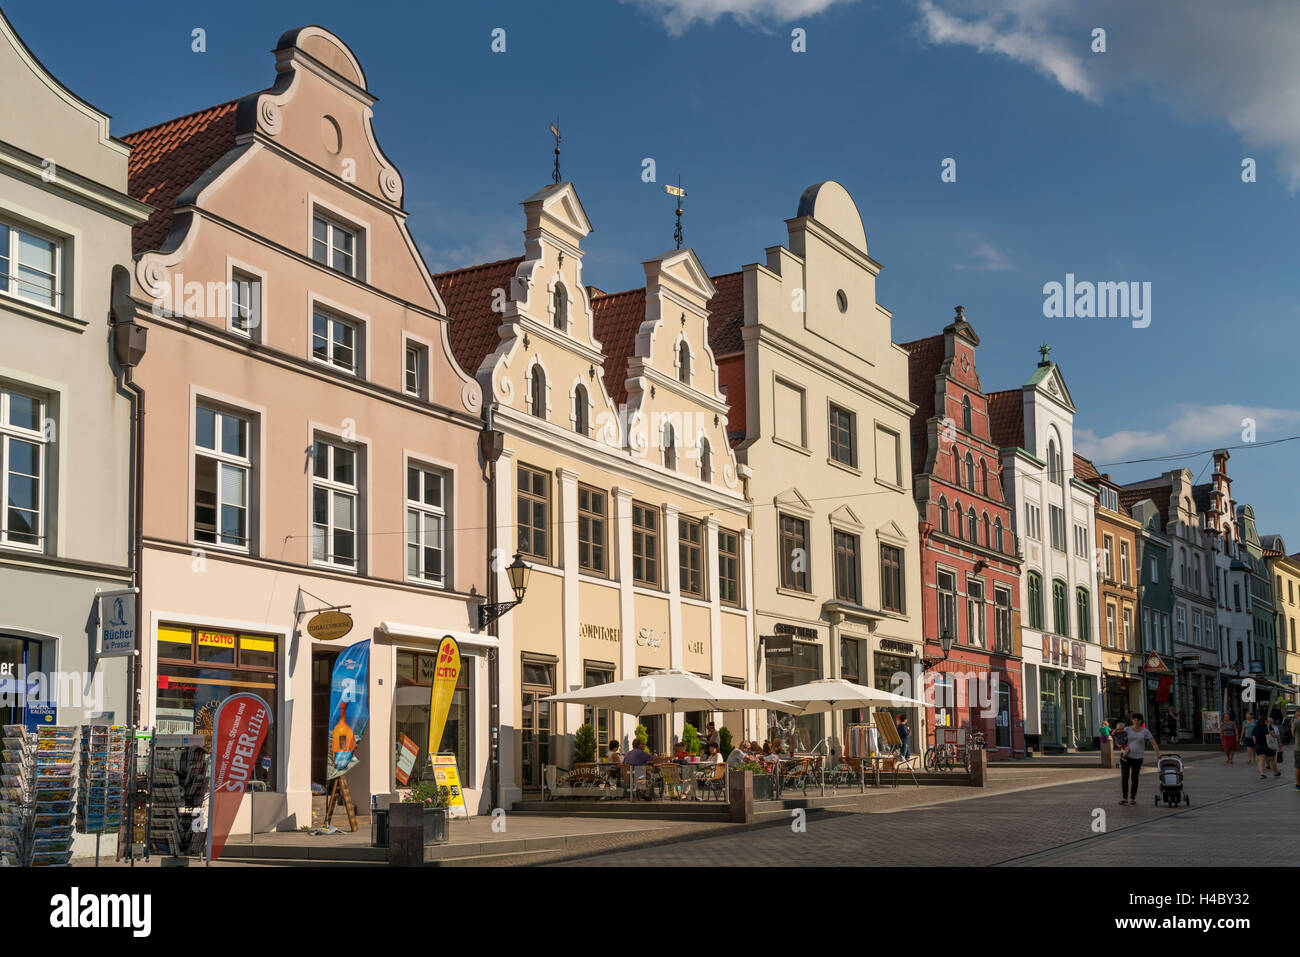 restored facades of the historic old town, Hanseatic City of Wismar, Mecklenburg-Vorpommern, Germany - Stock Image